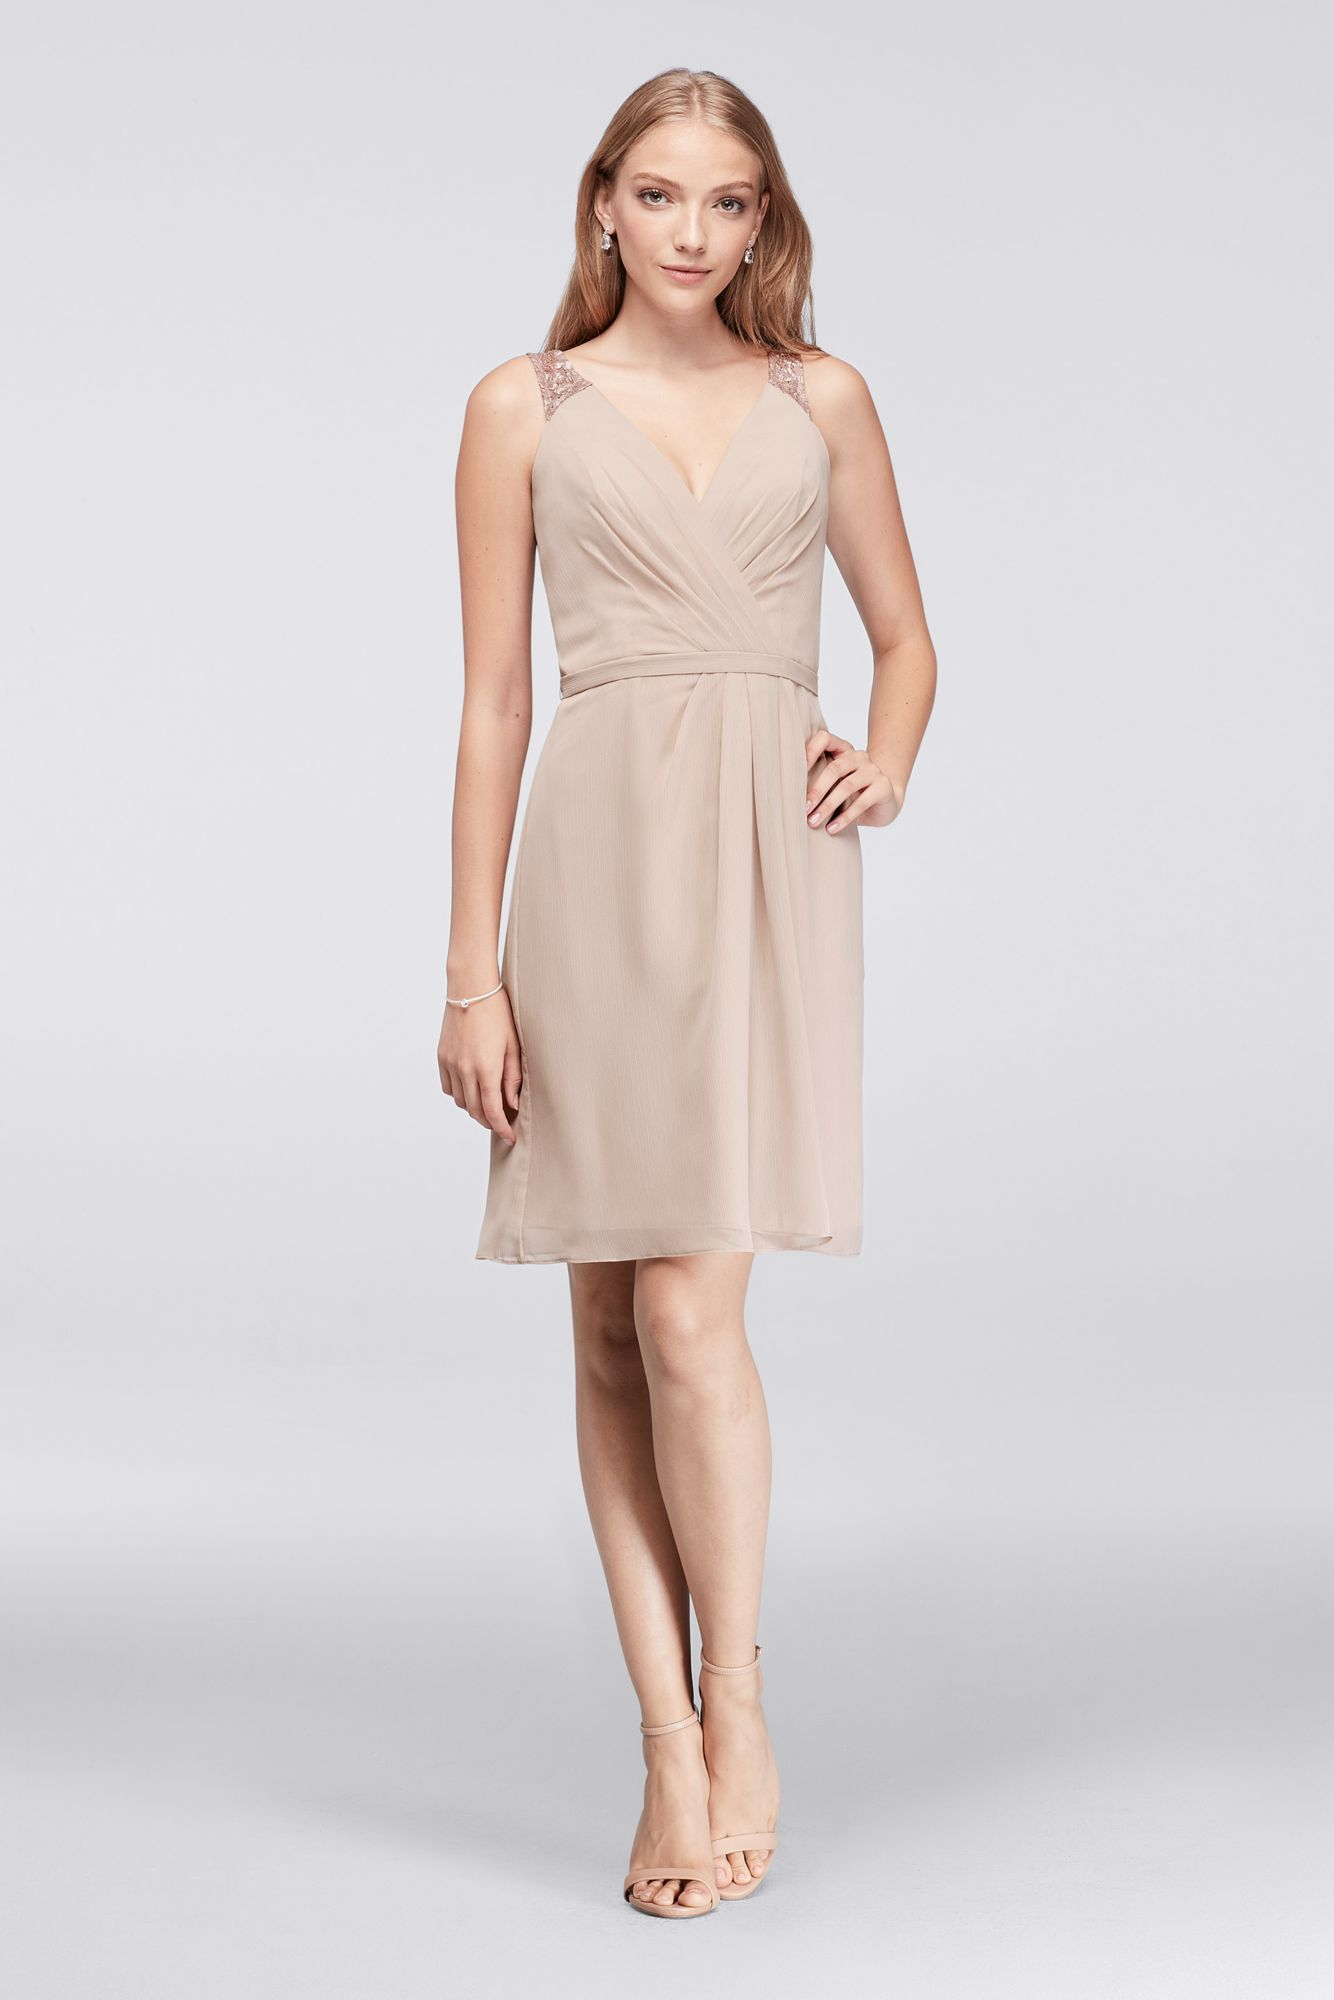 Simple tank v neck above knee length metallic chiffon fm